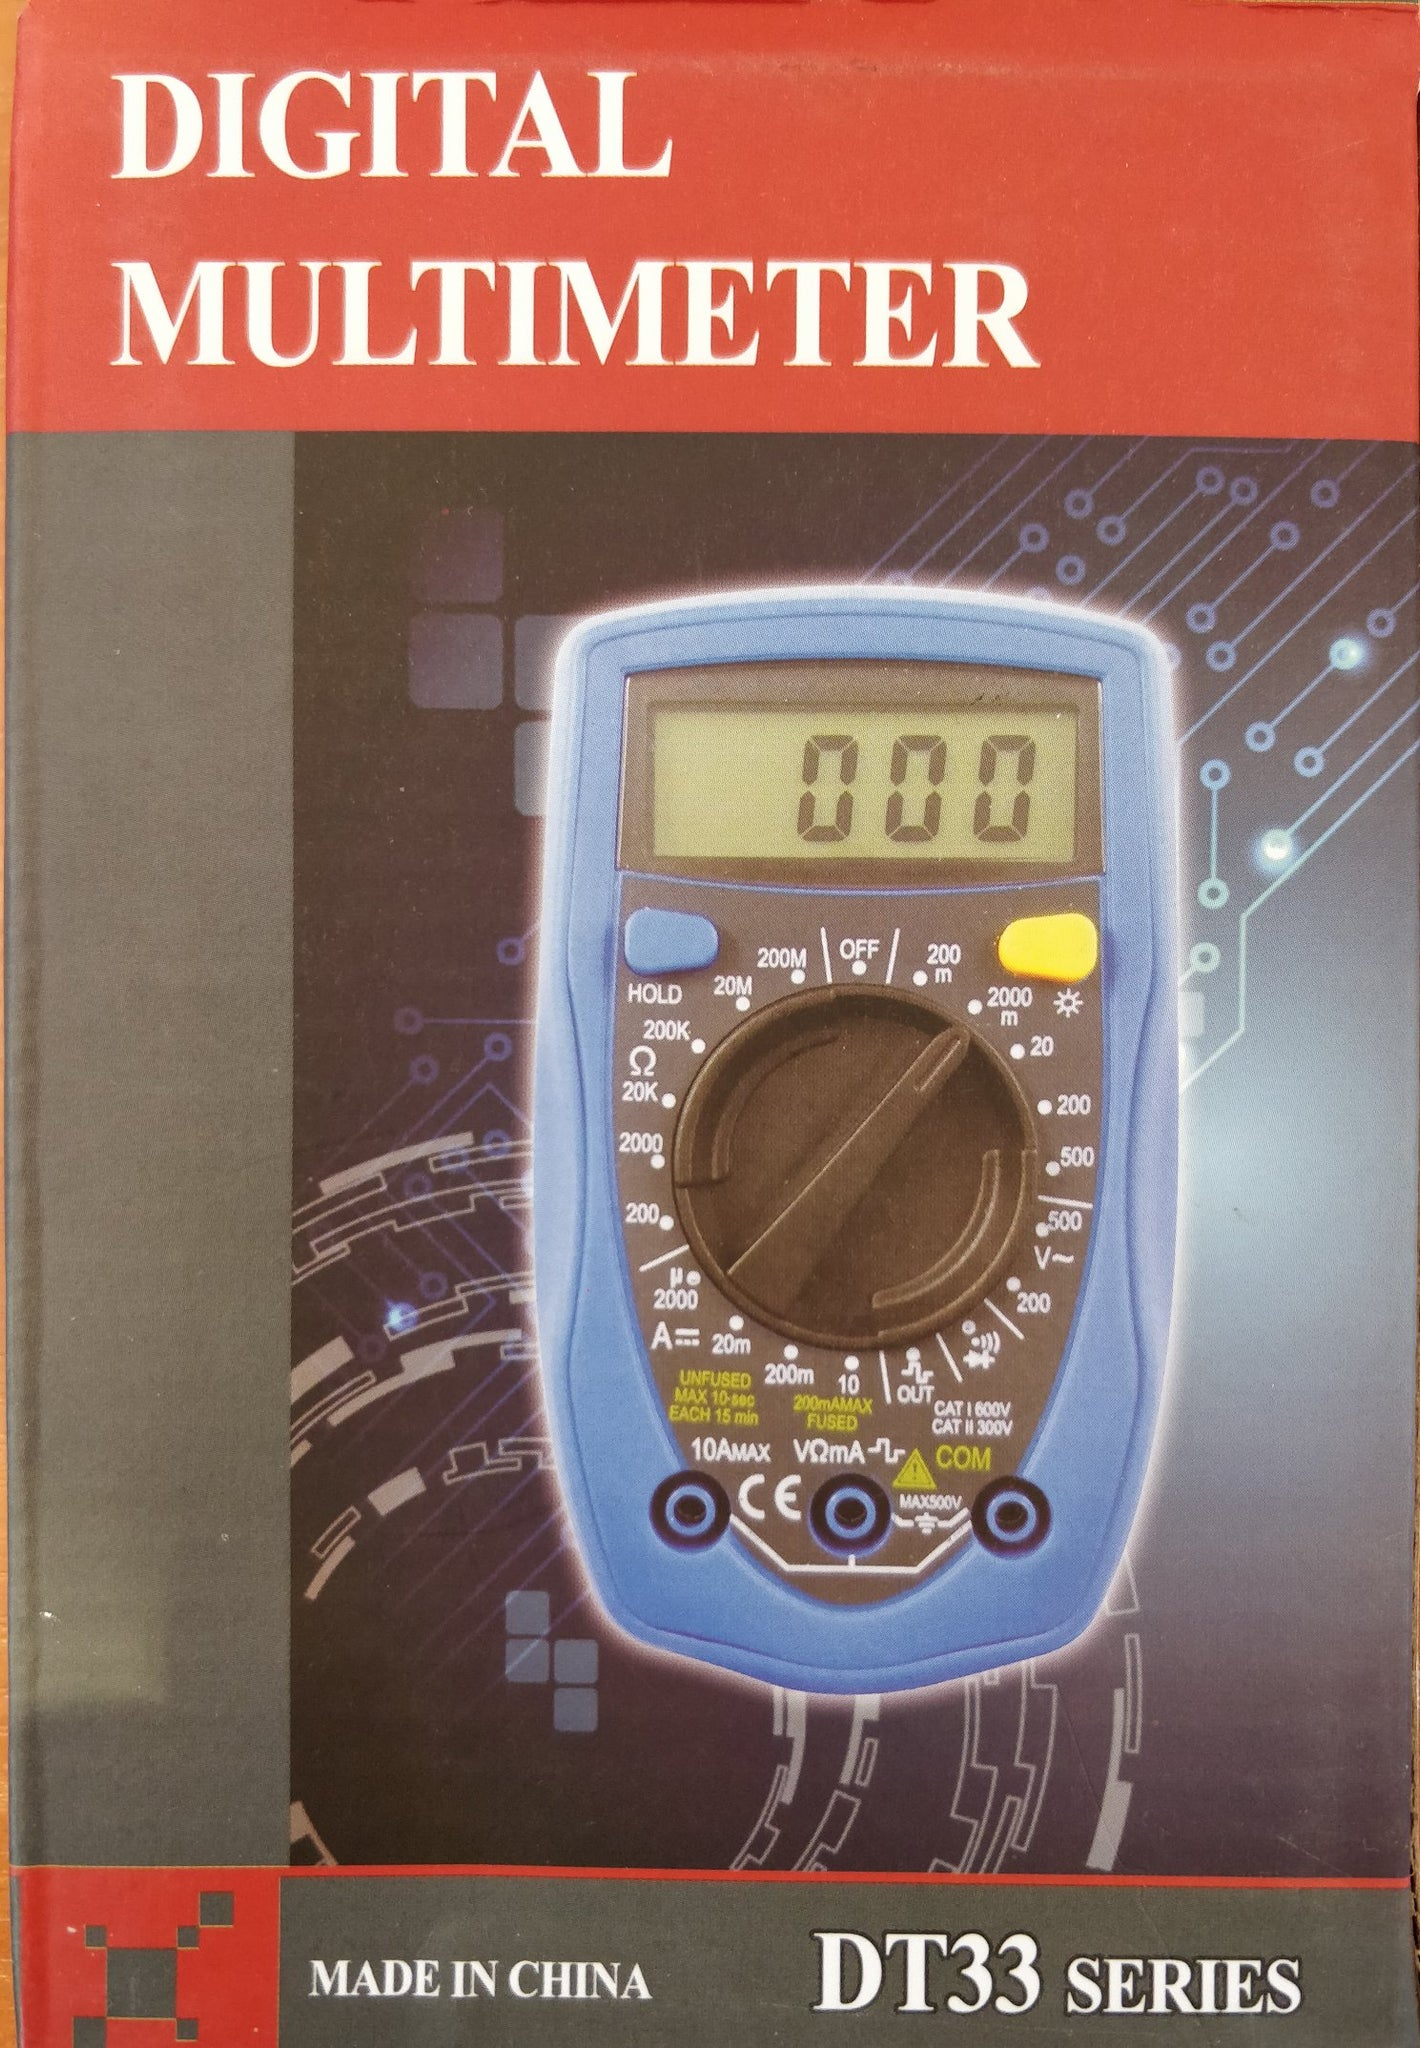 Digital Multimeter DT33